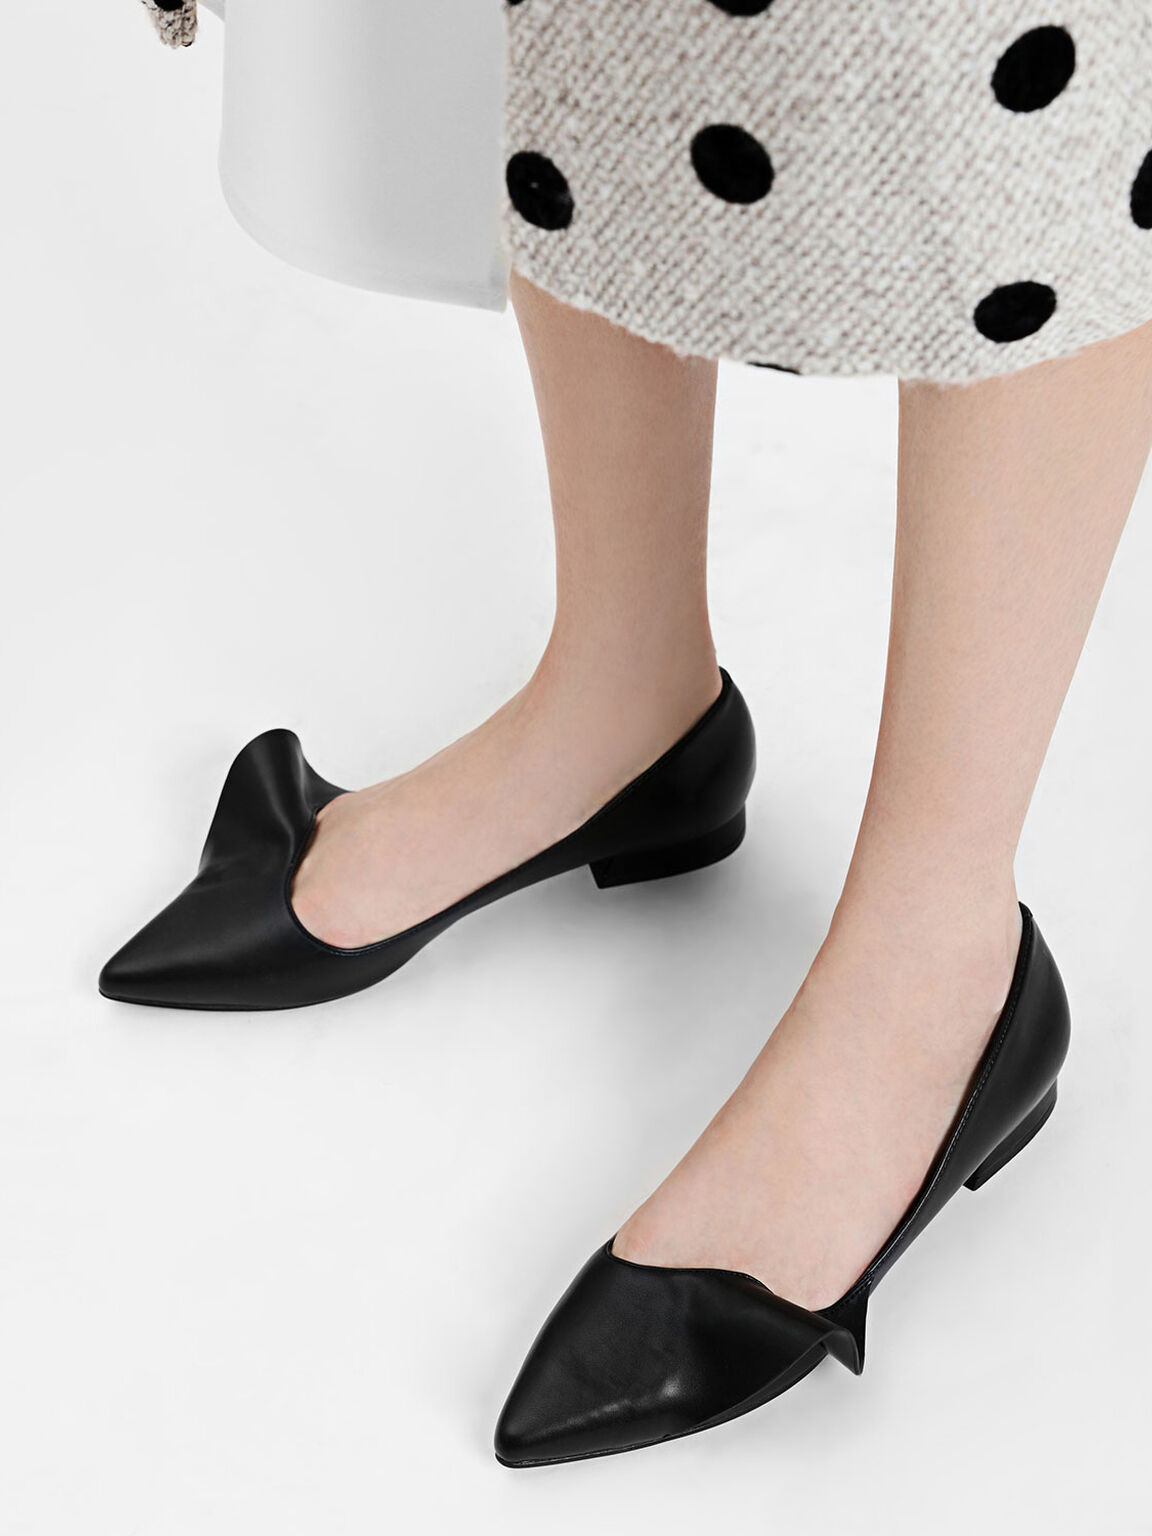 Ruffle Detail Pointed Flats, Black, hi-res